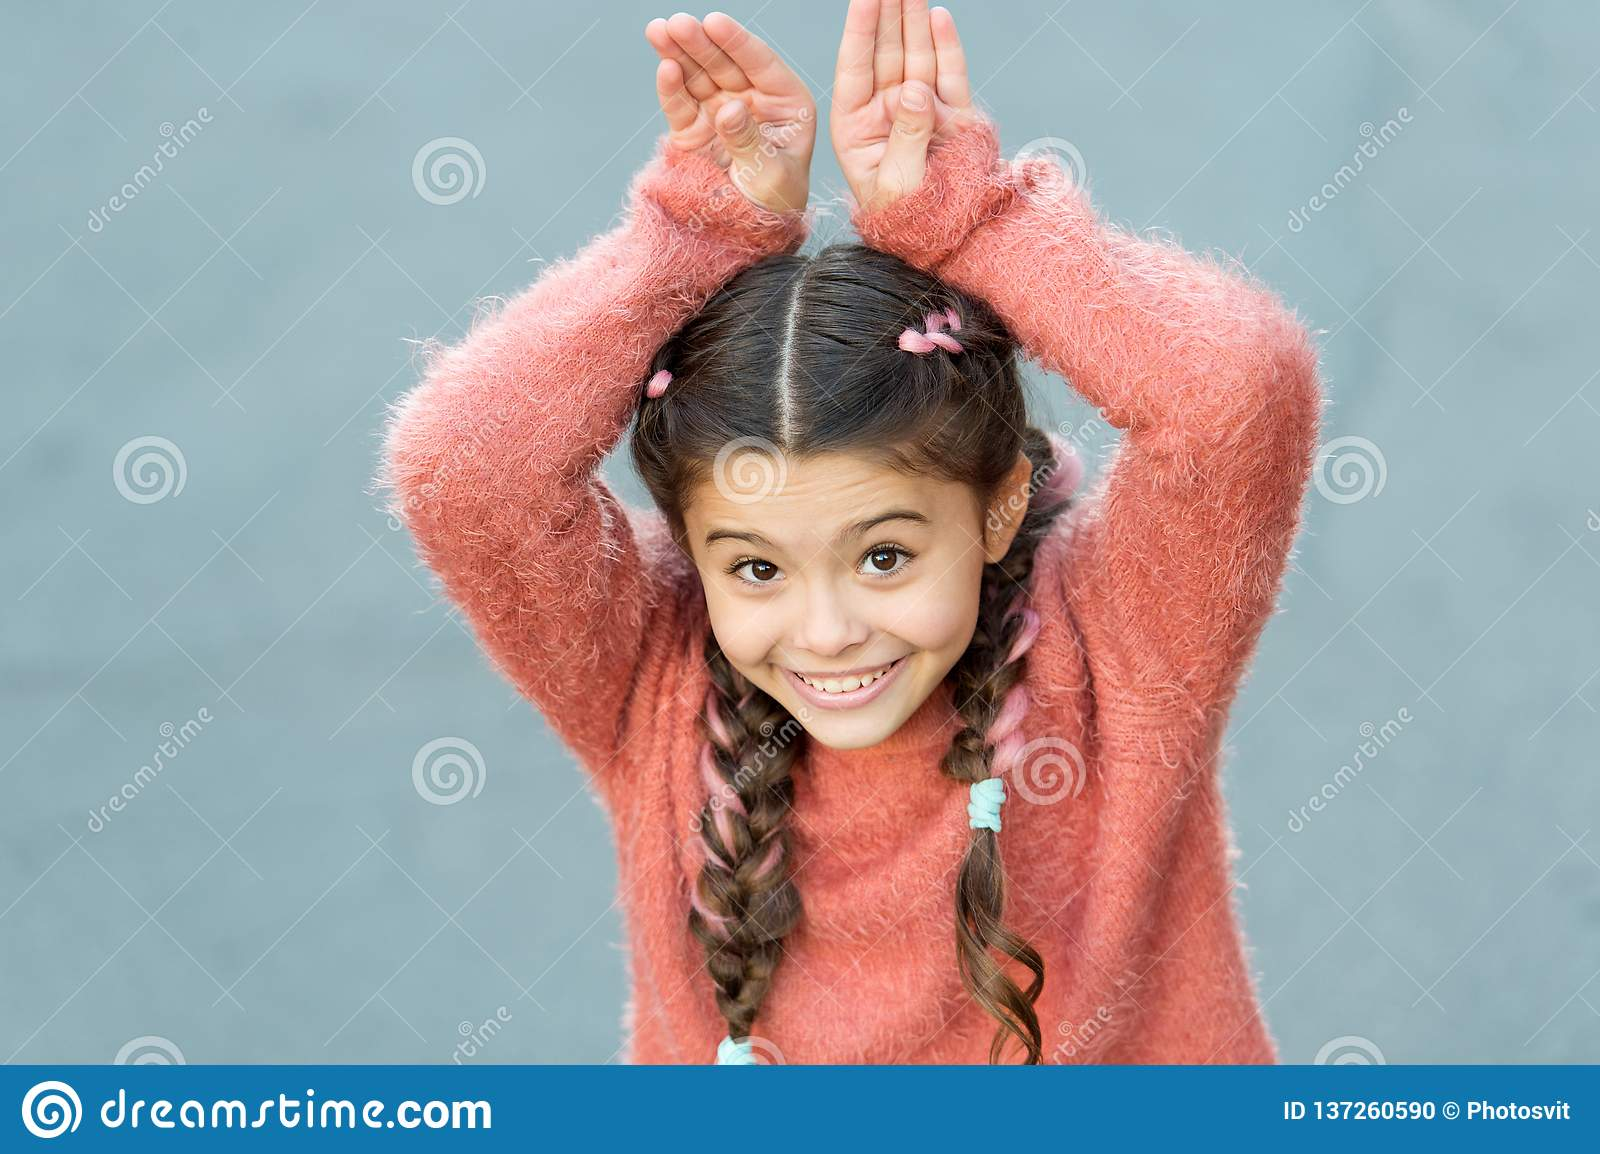 Cute bunny. Happy easter. Holiday bunny girl posing like rabbit grey background. Child smiling play bunny role. Playful